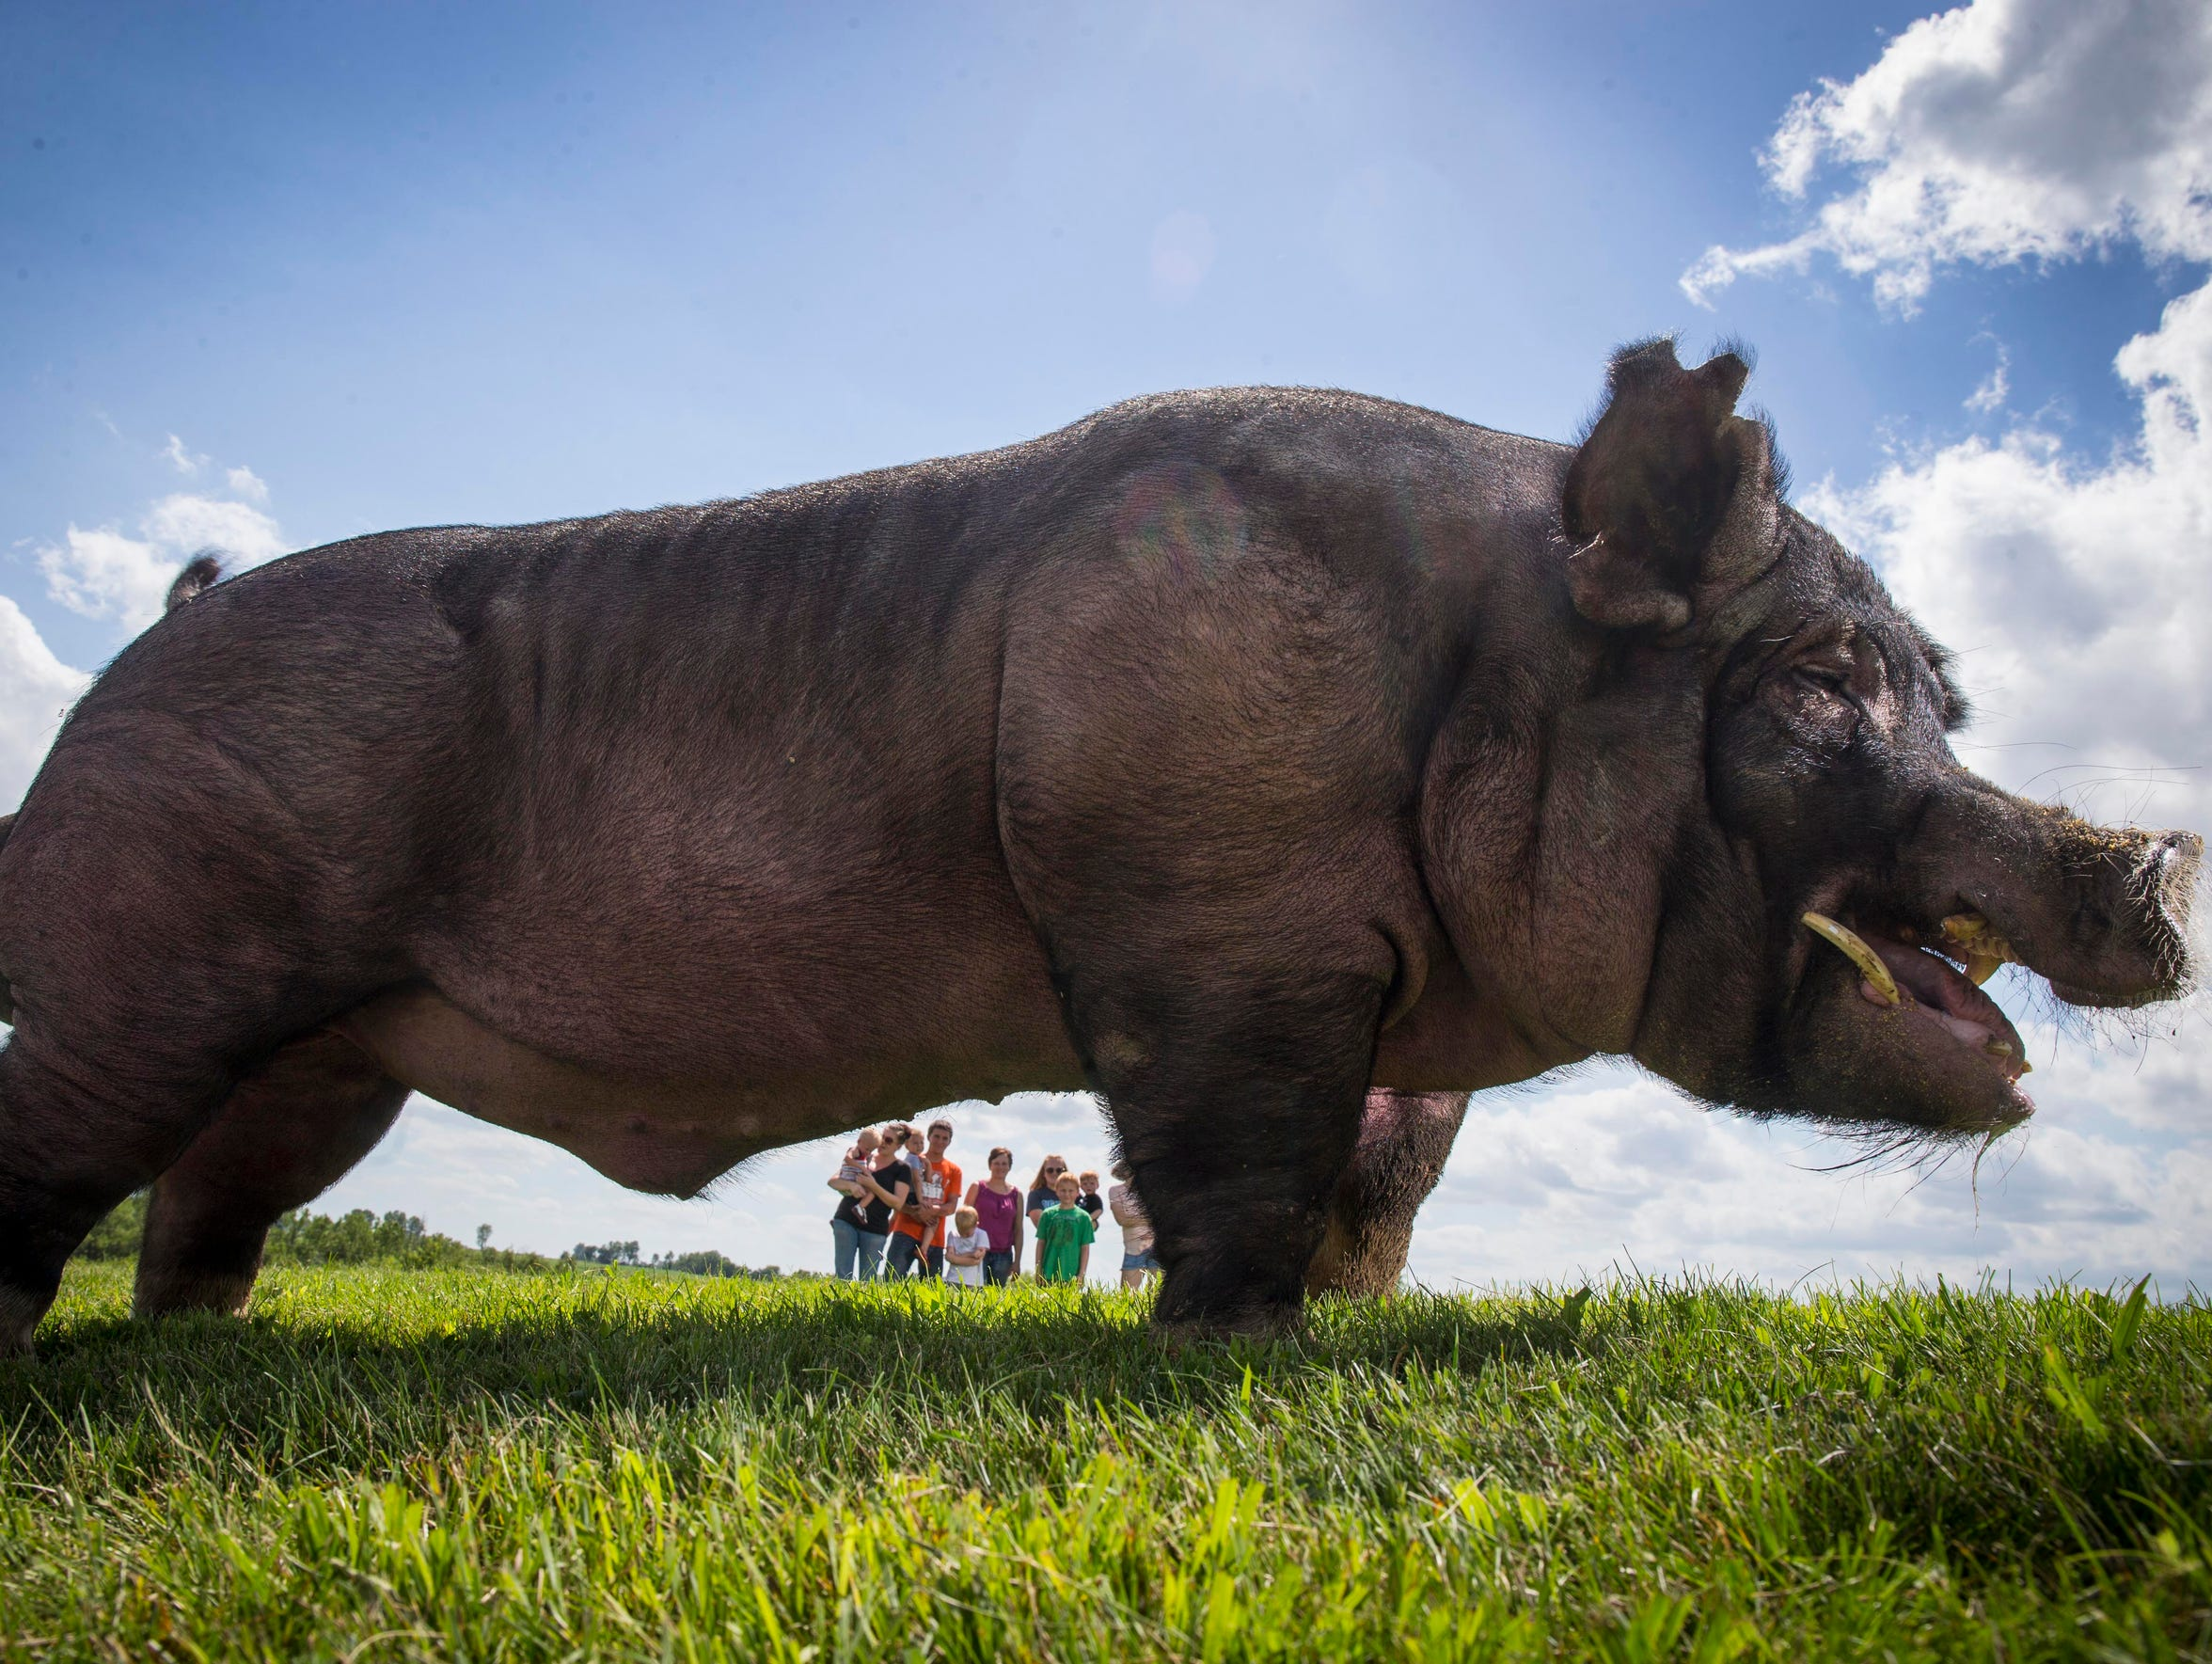 Turbo Charge, a boar owned by Steve and Dara Queck